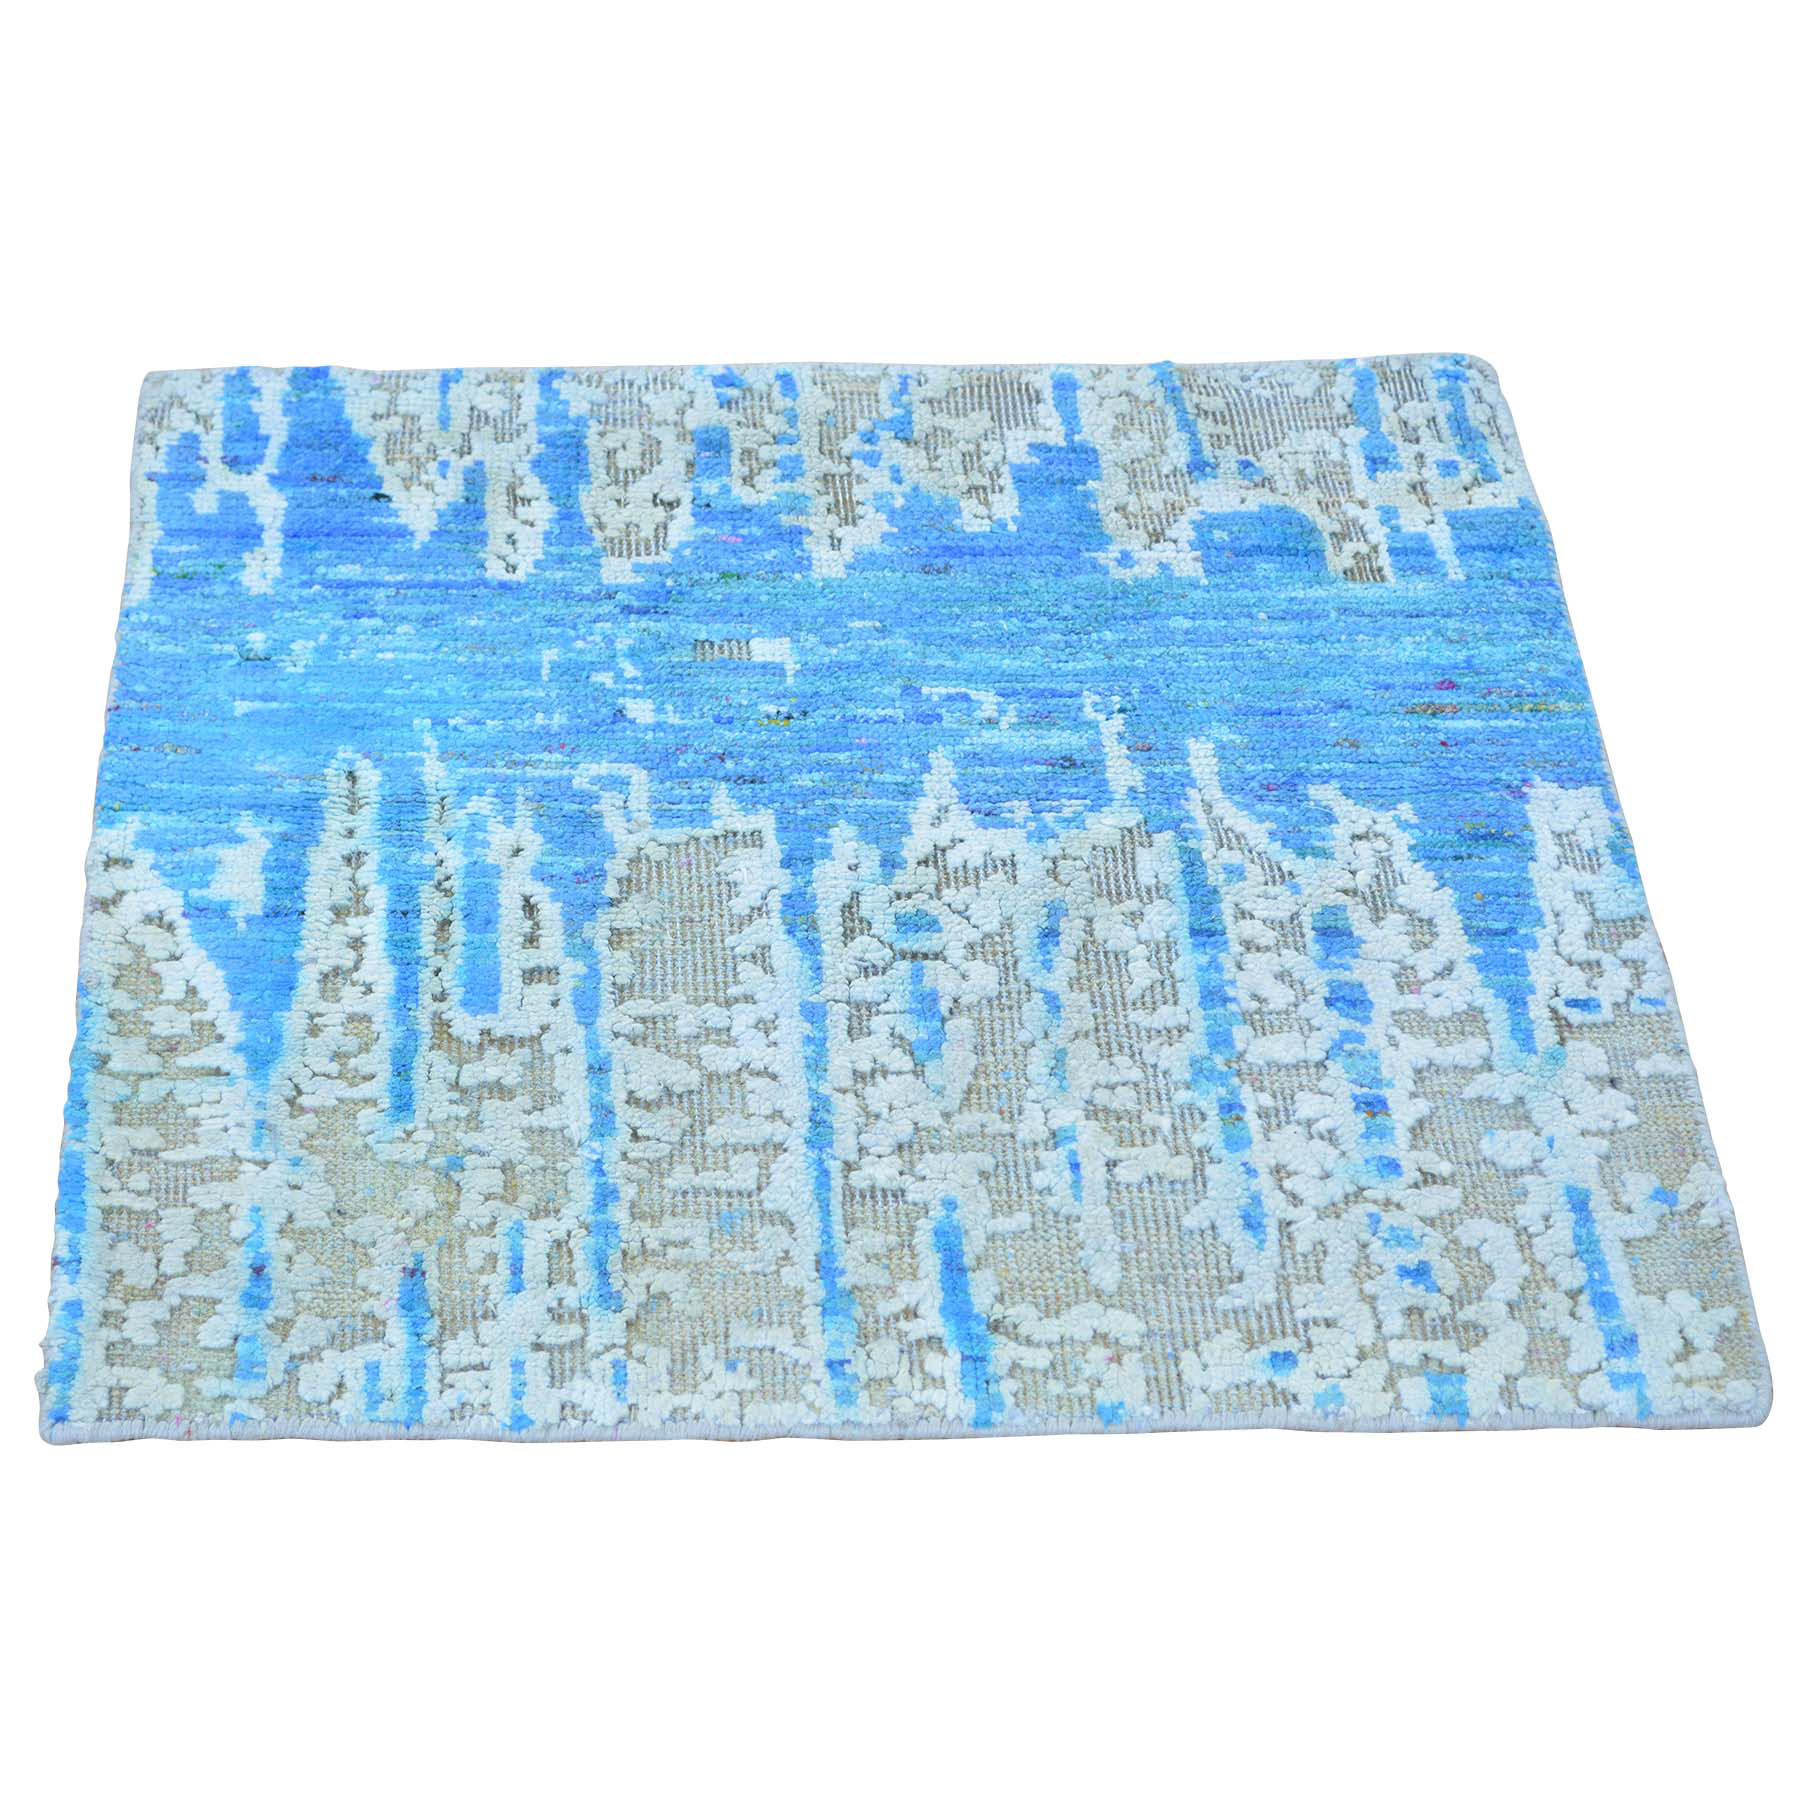 Mid Century Modern Collection Hand Knotted Multicolored Rug No: 0148632